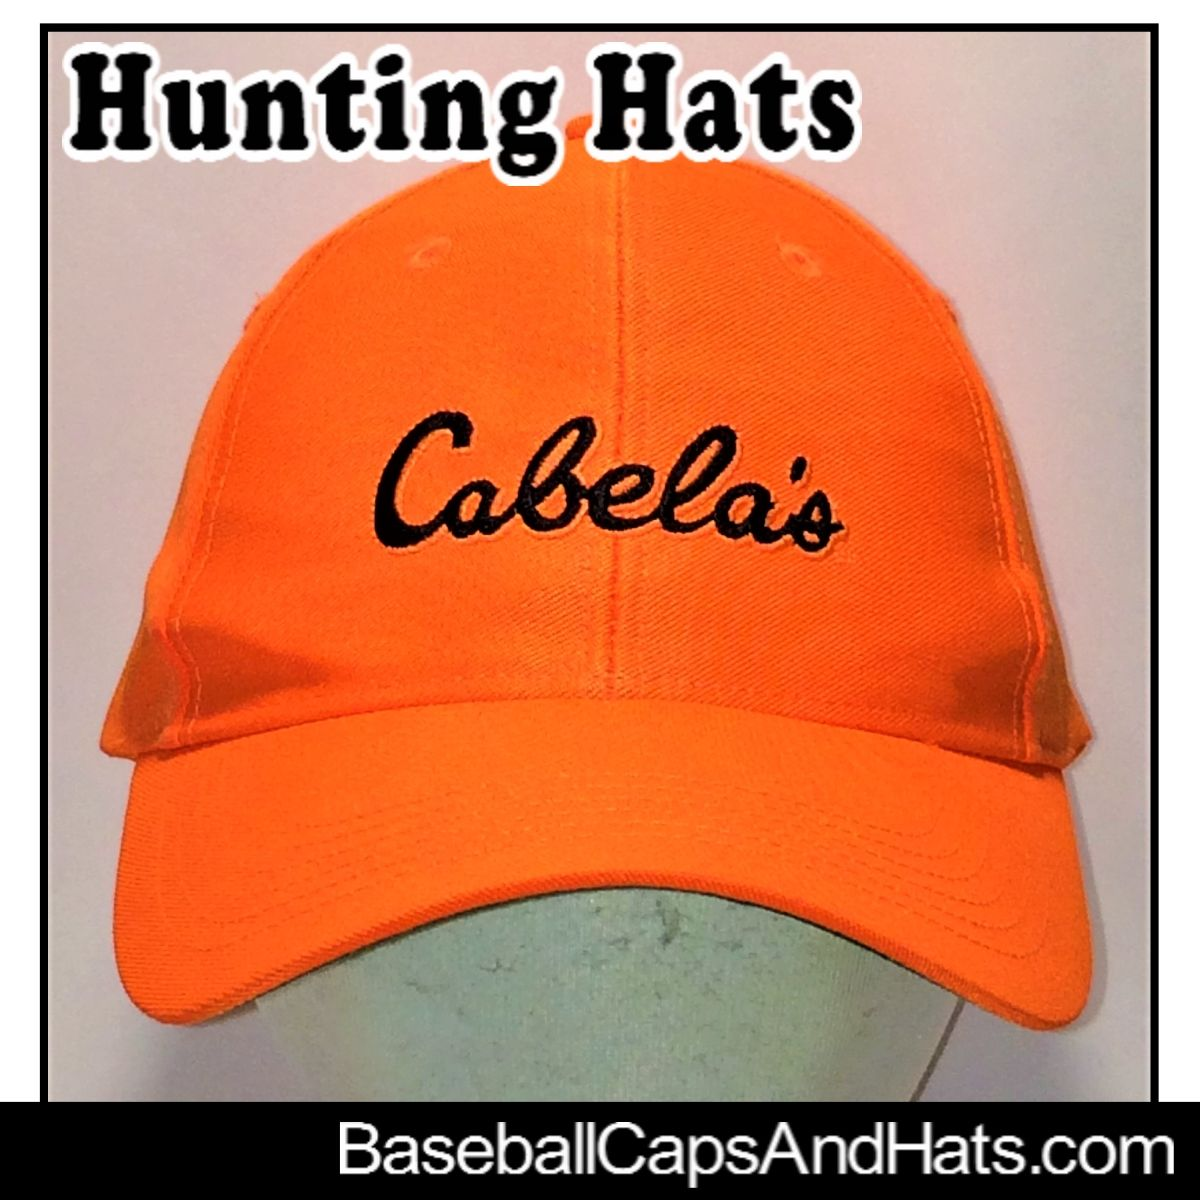 Hunting Hats - Check Out our selection of Hunting Hats like this Cabela s  Blaze Orange Hat 796d04159ffb